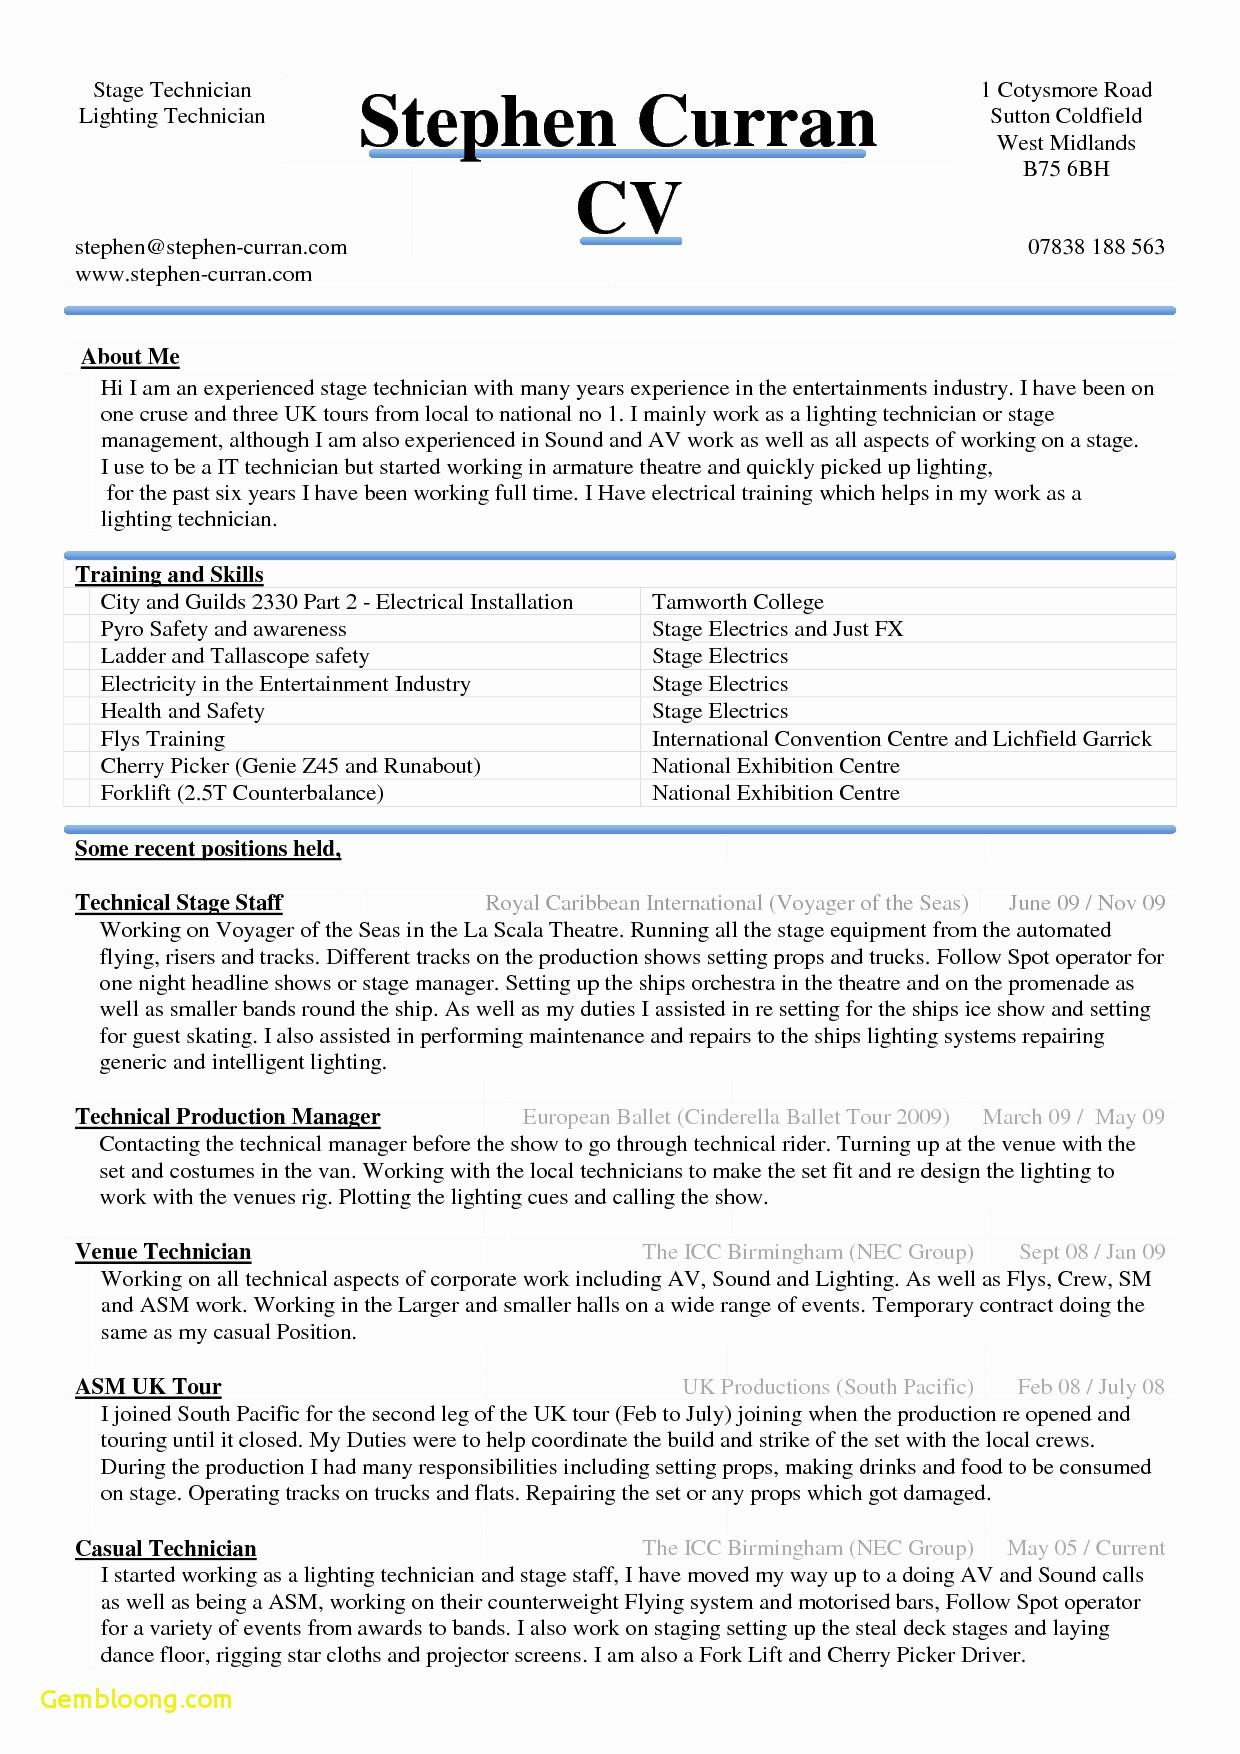 Best Cv Format Doc Free Download